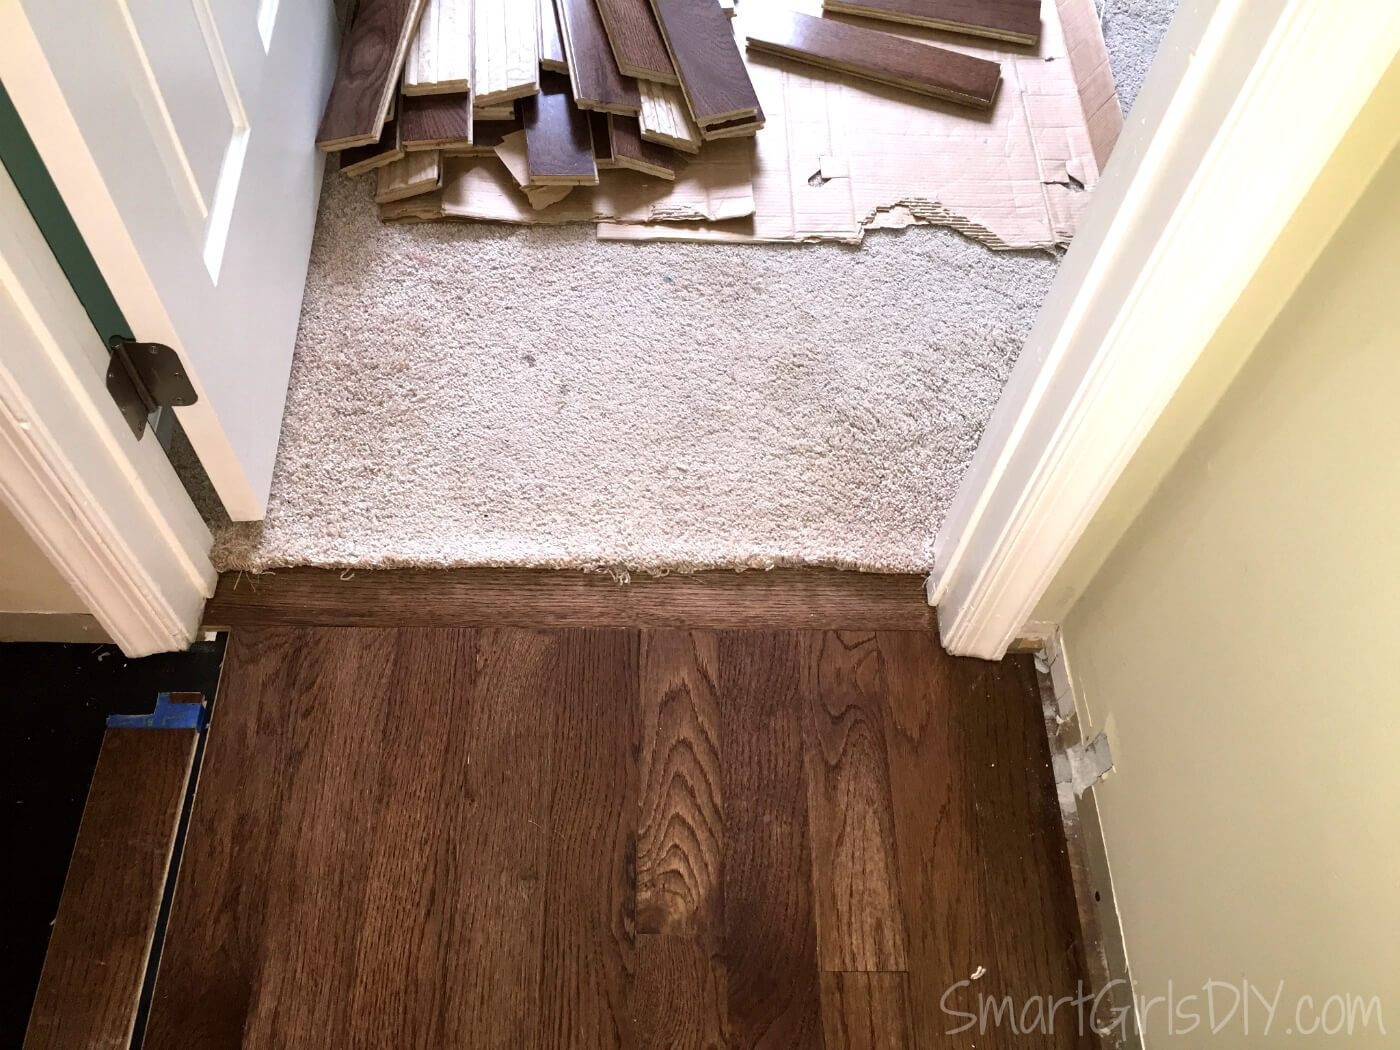 how do you refinish hardwood floors yourself of wood floor to carpet transition luxury upstairs hallway 1 installing intended for upstairs hallway 1 installing hardwood floors refinishing